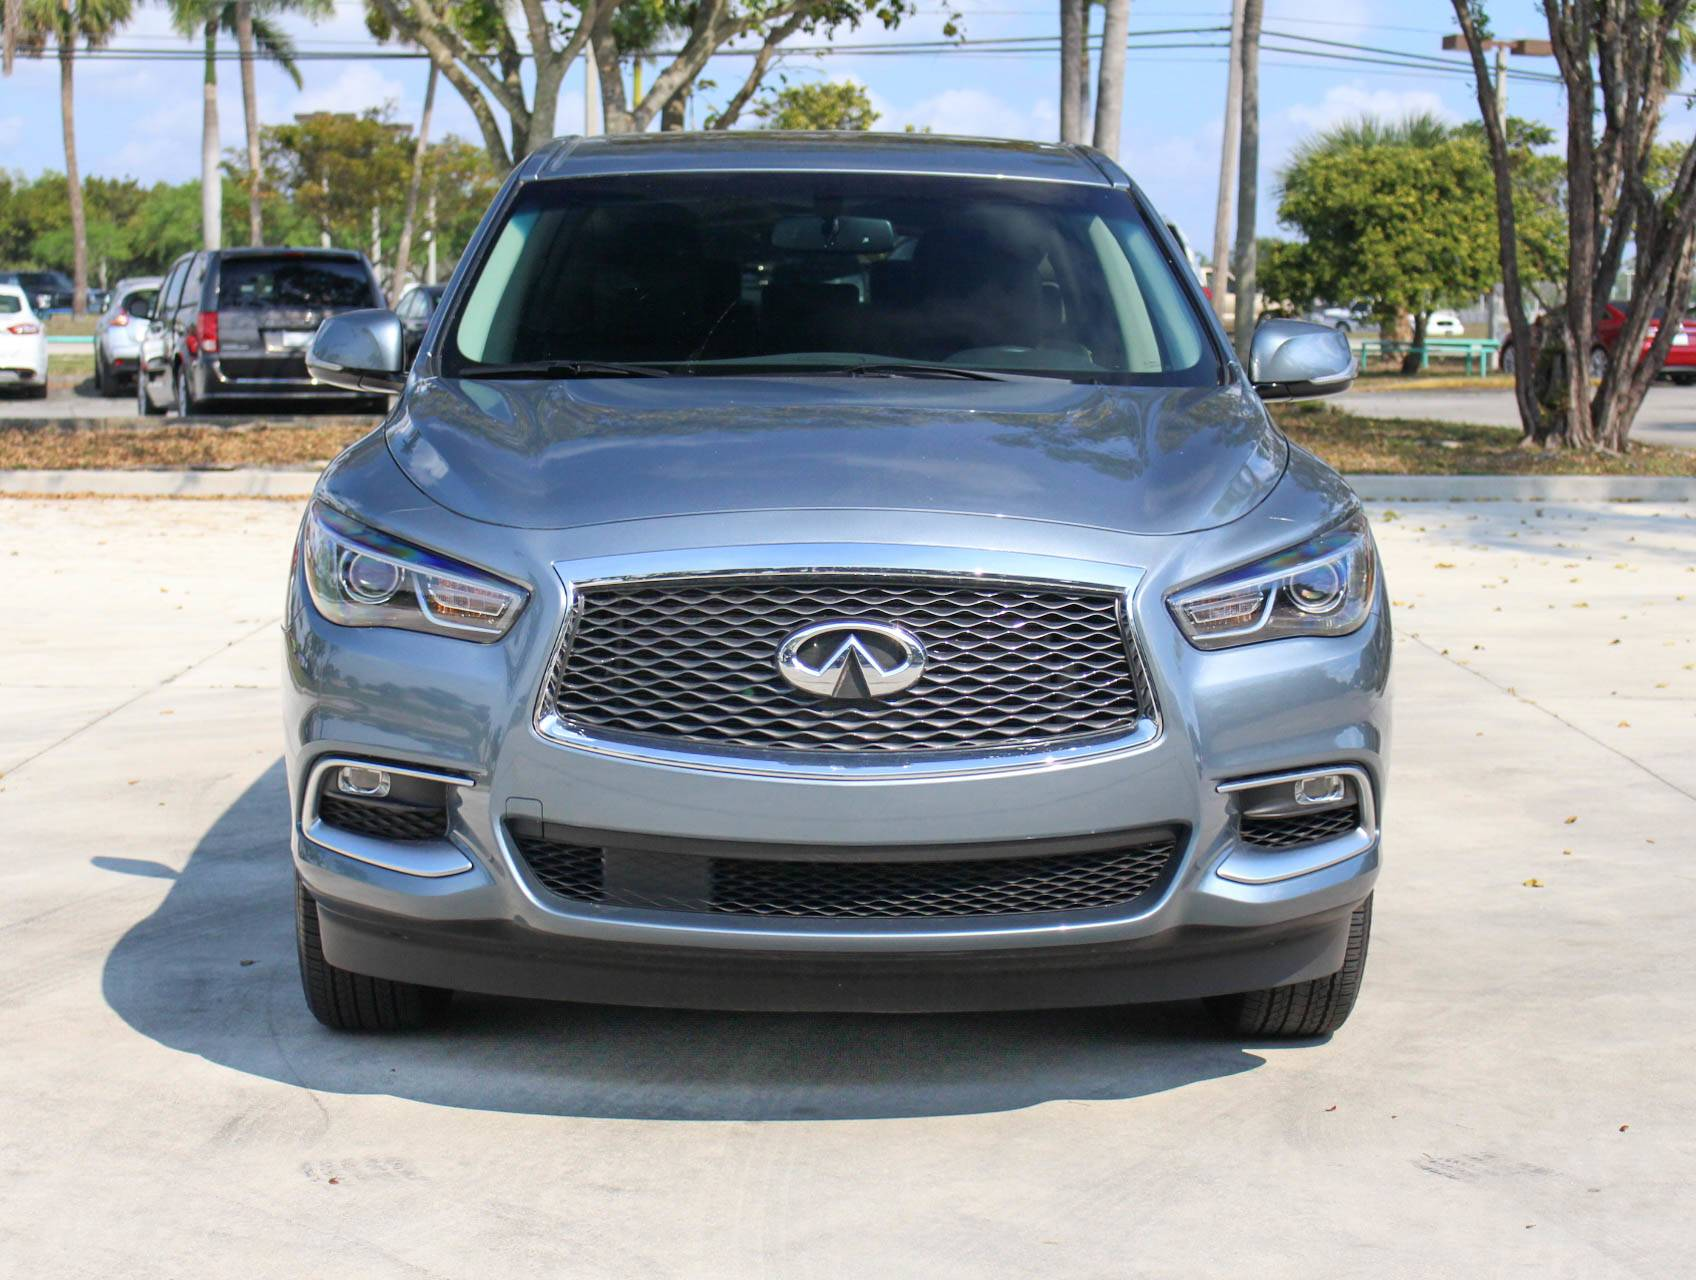 by side view volvo slower awd tested out waves than infiniti is the followed relevant turns ve first competitor but quick rivals seconds mdx not we acura sh mortgage spacious test front quickest